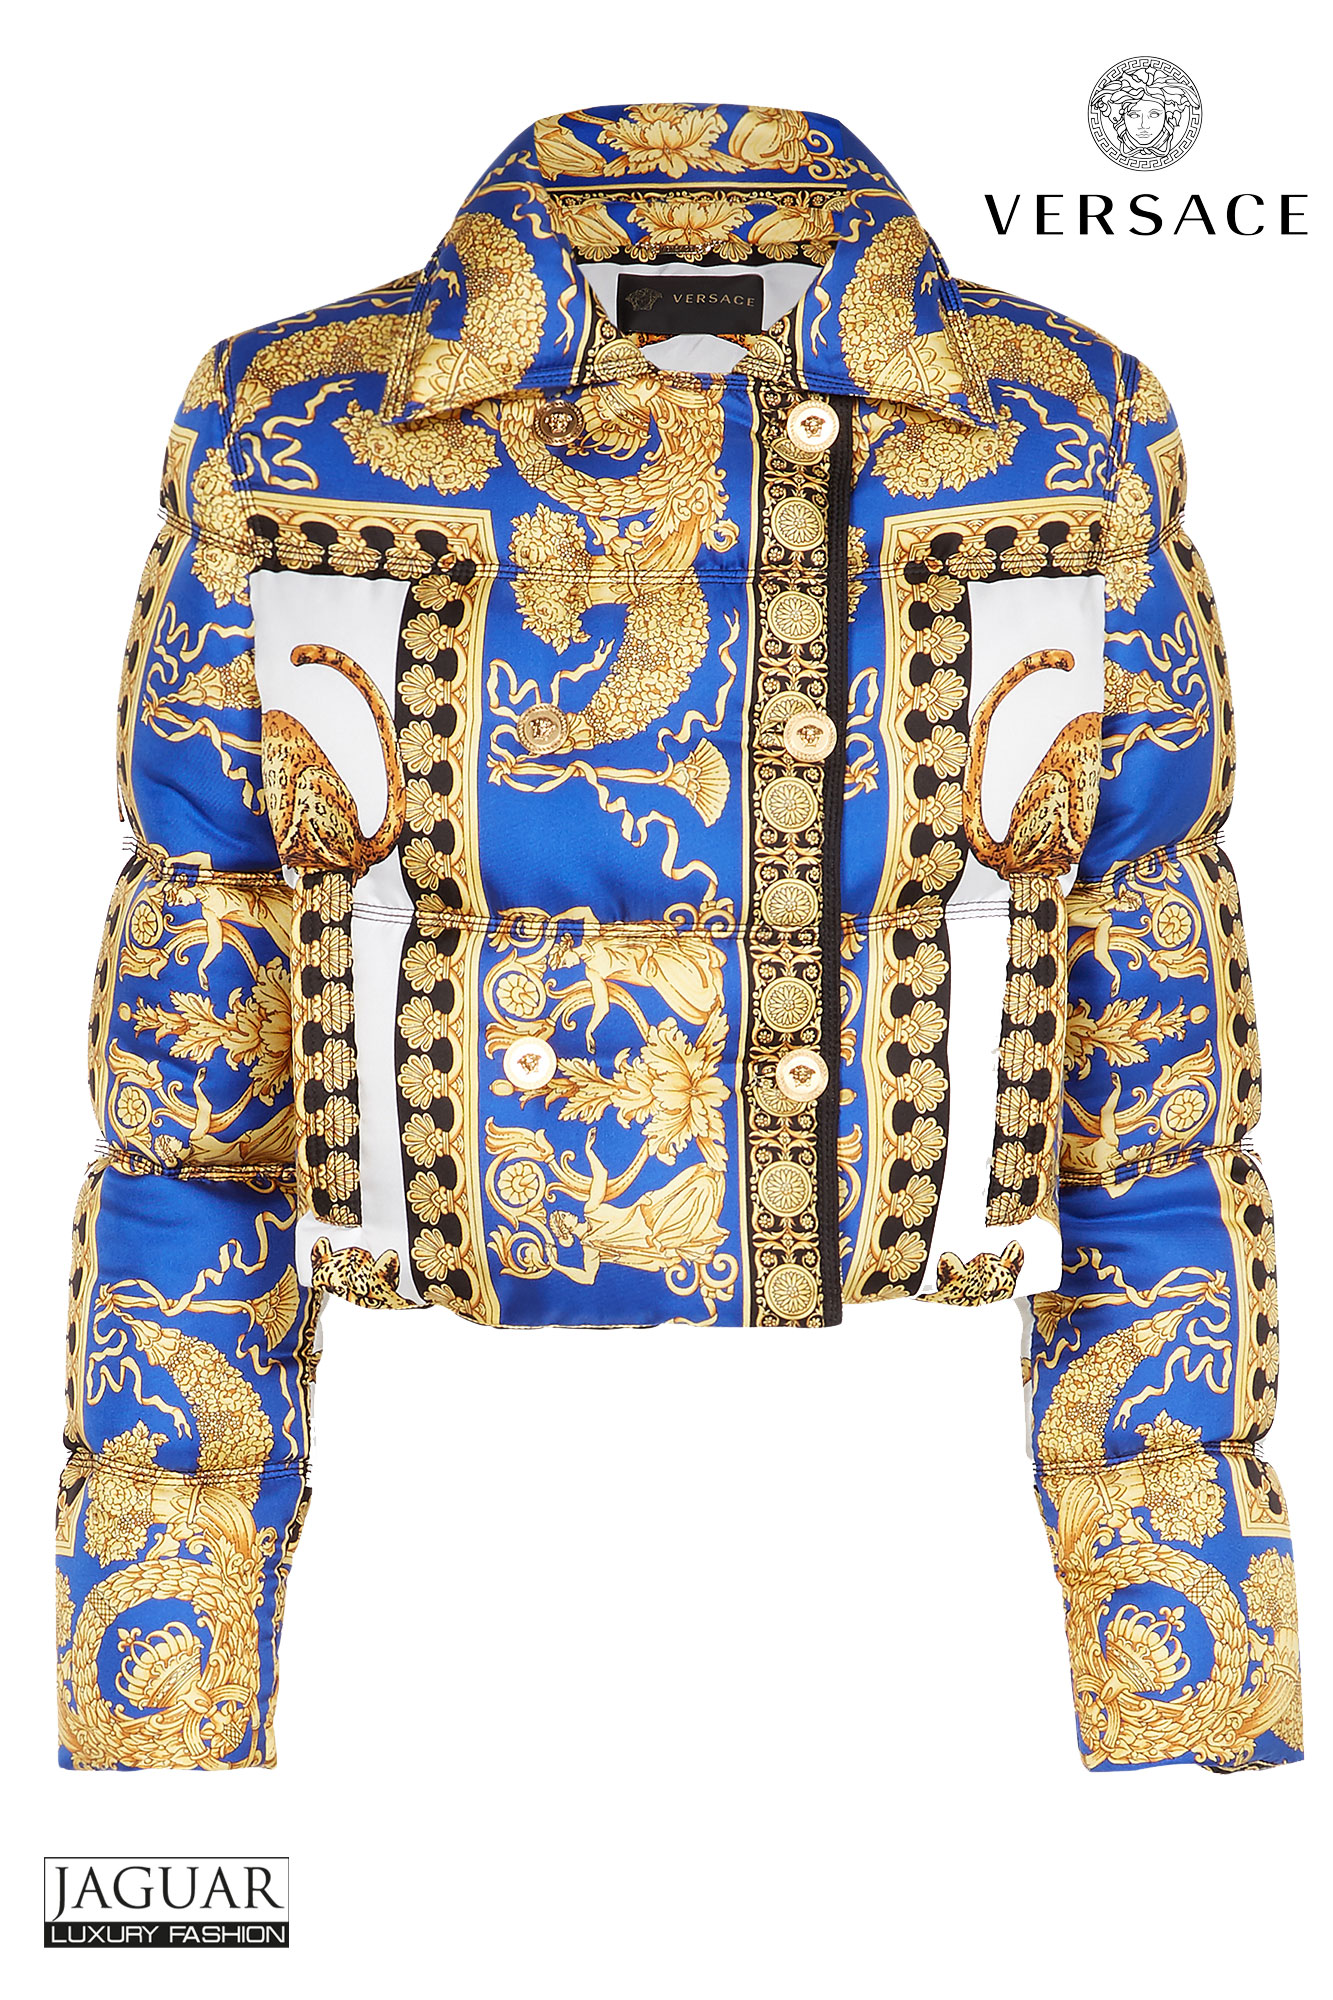 Versace jacket pillow talk